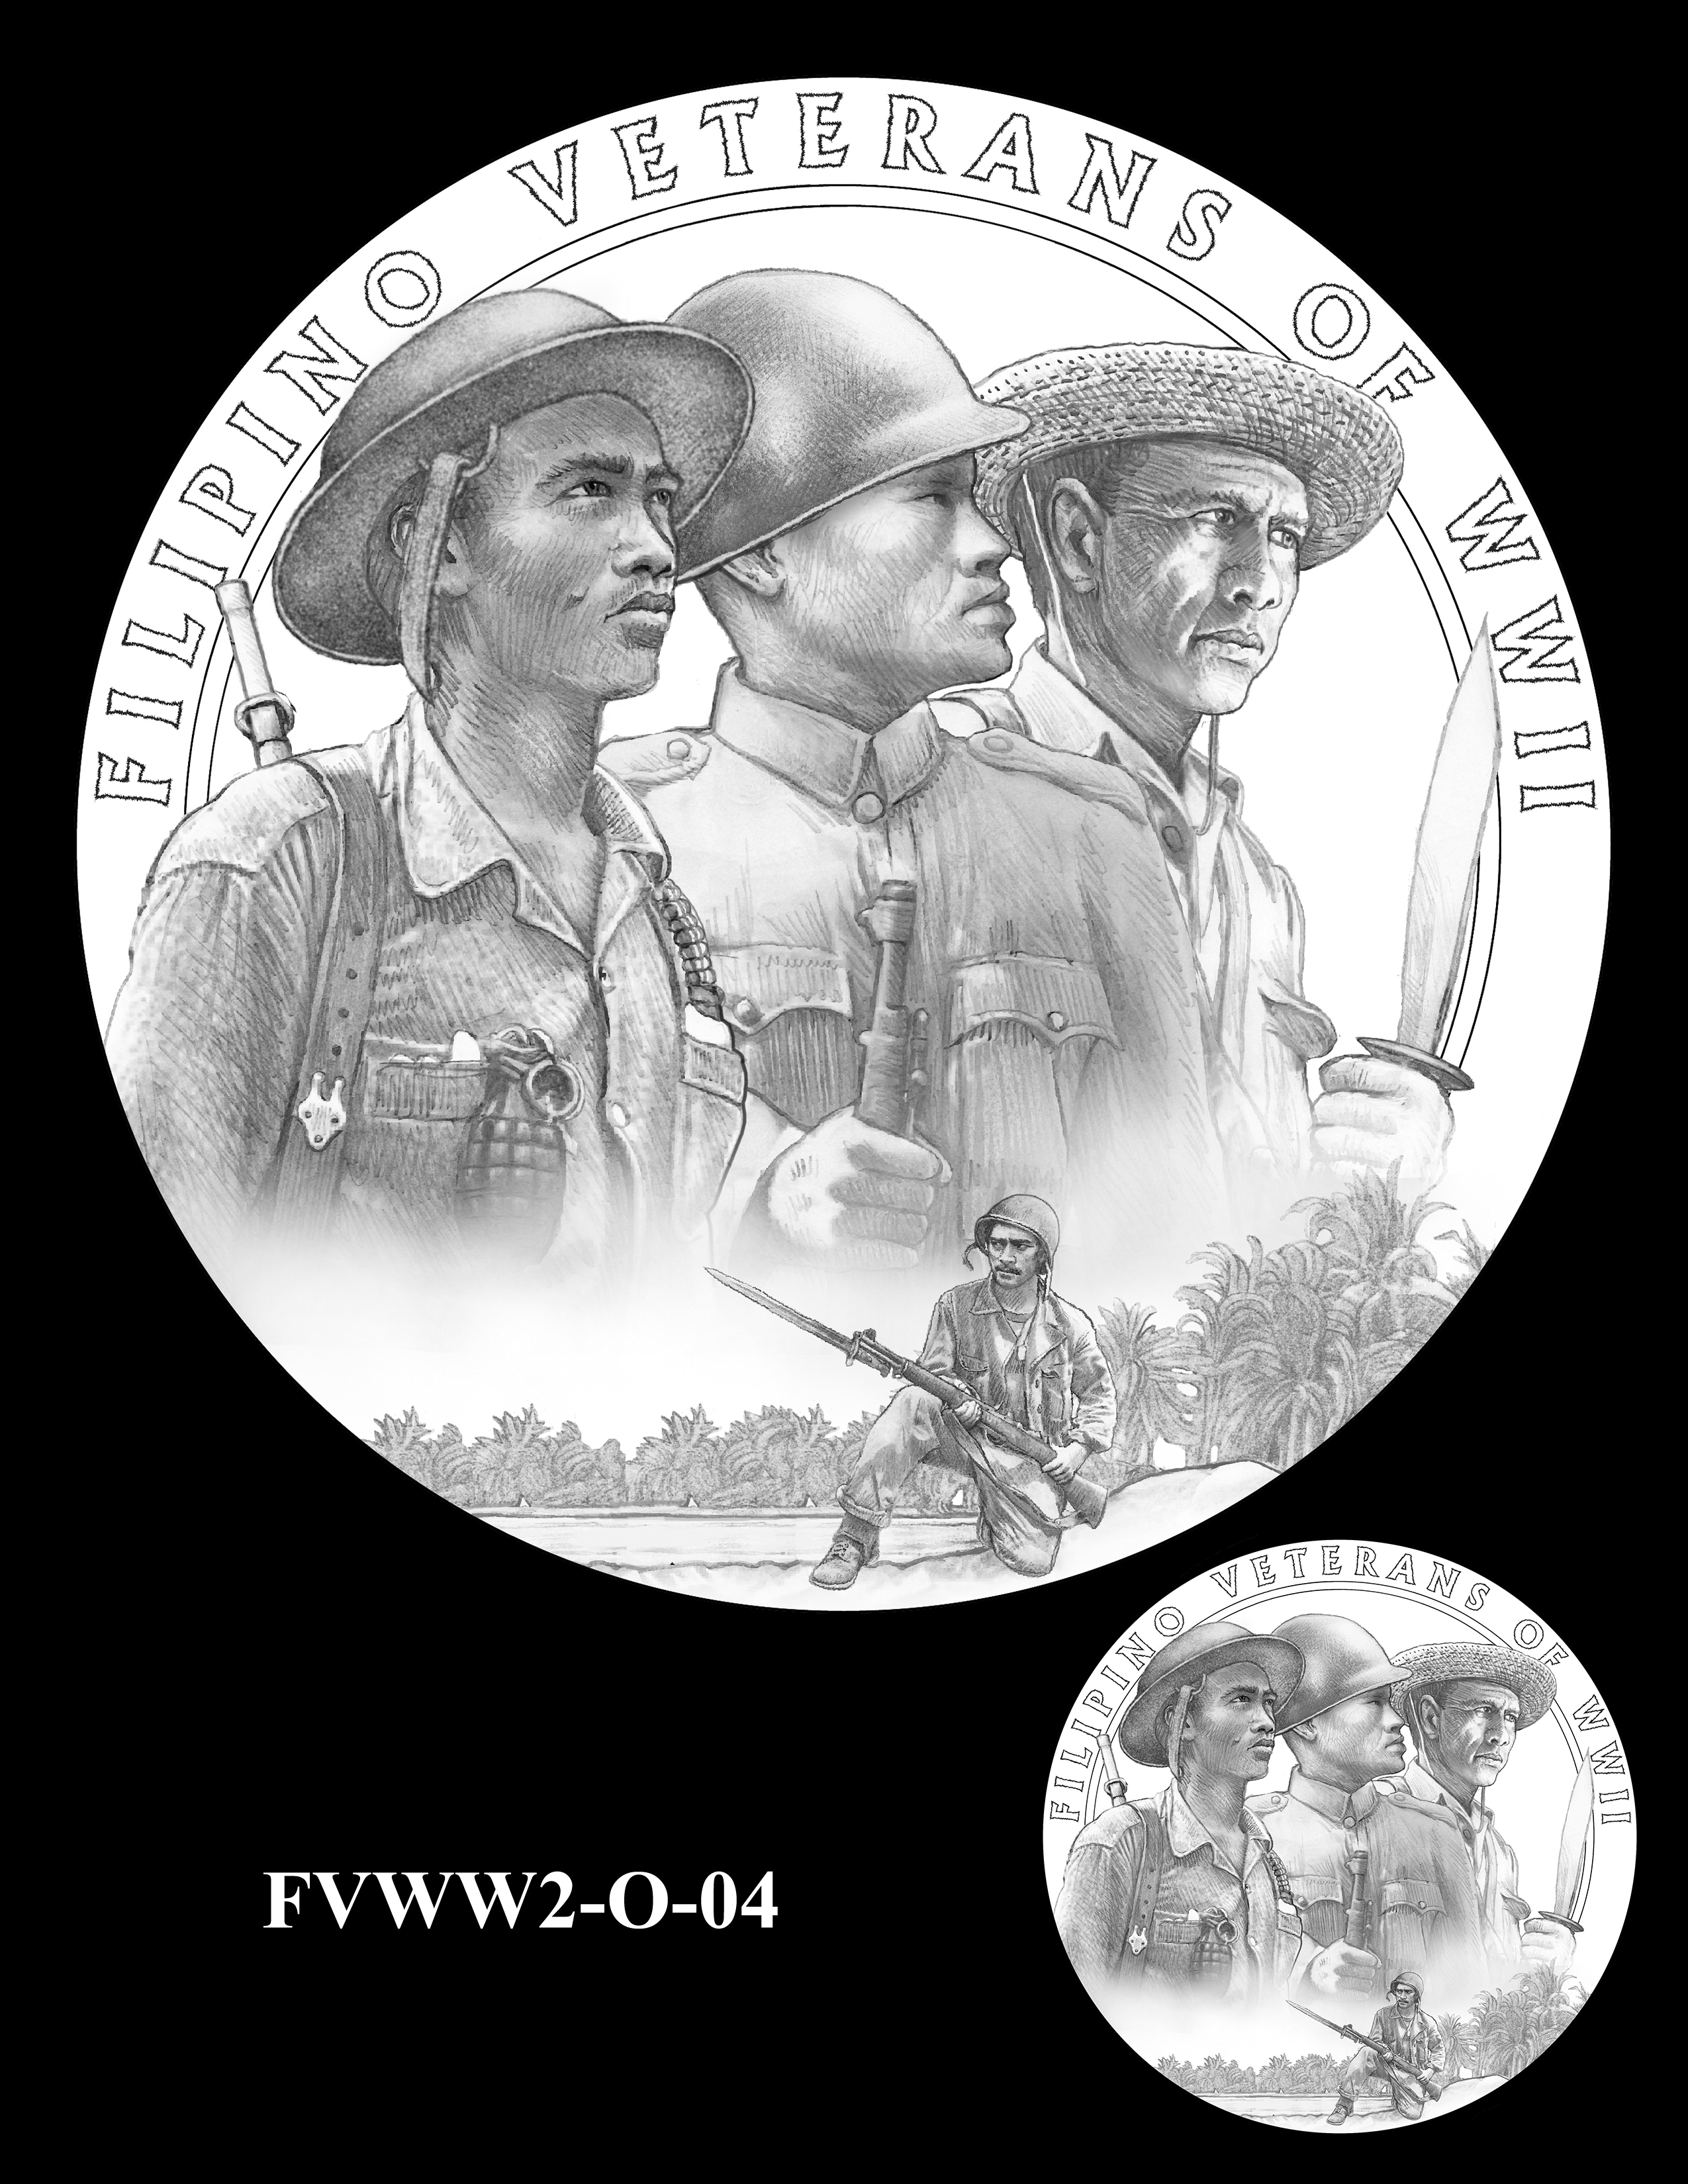 FVWW2-O-04 -- Filipino Veterans of World War II Congressional Gold Medal